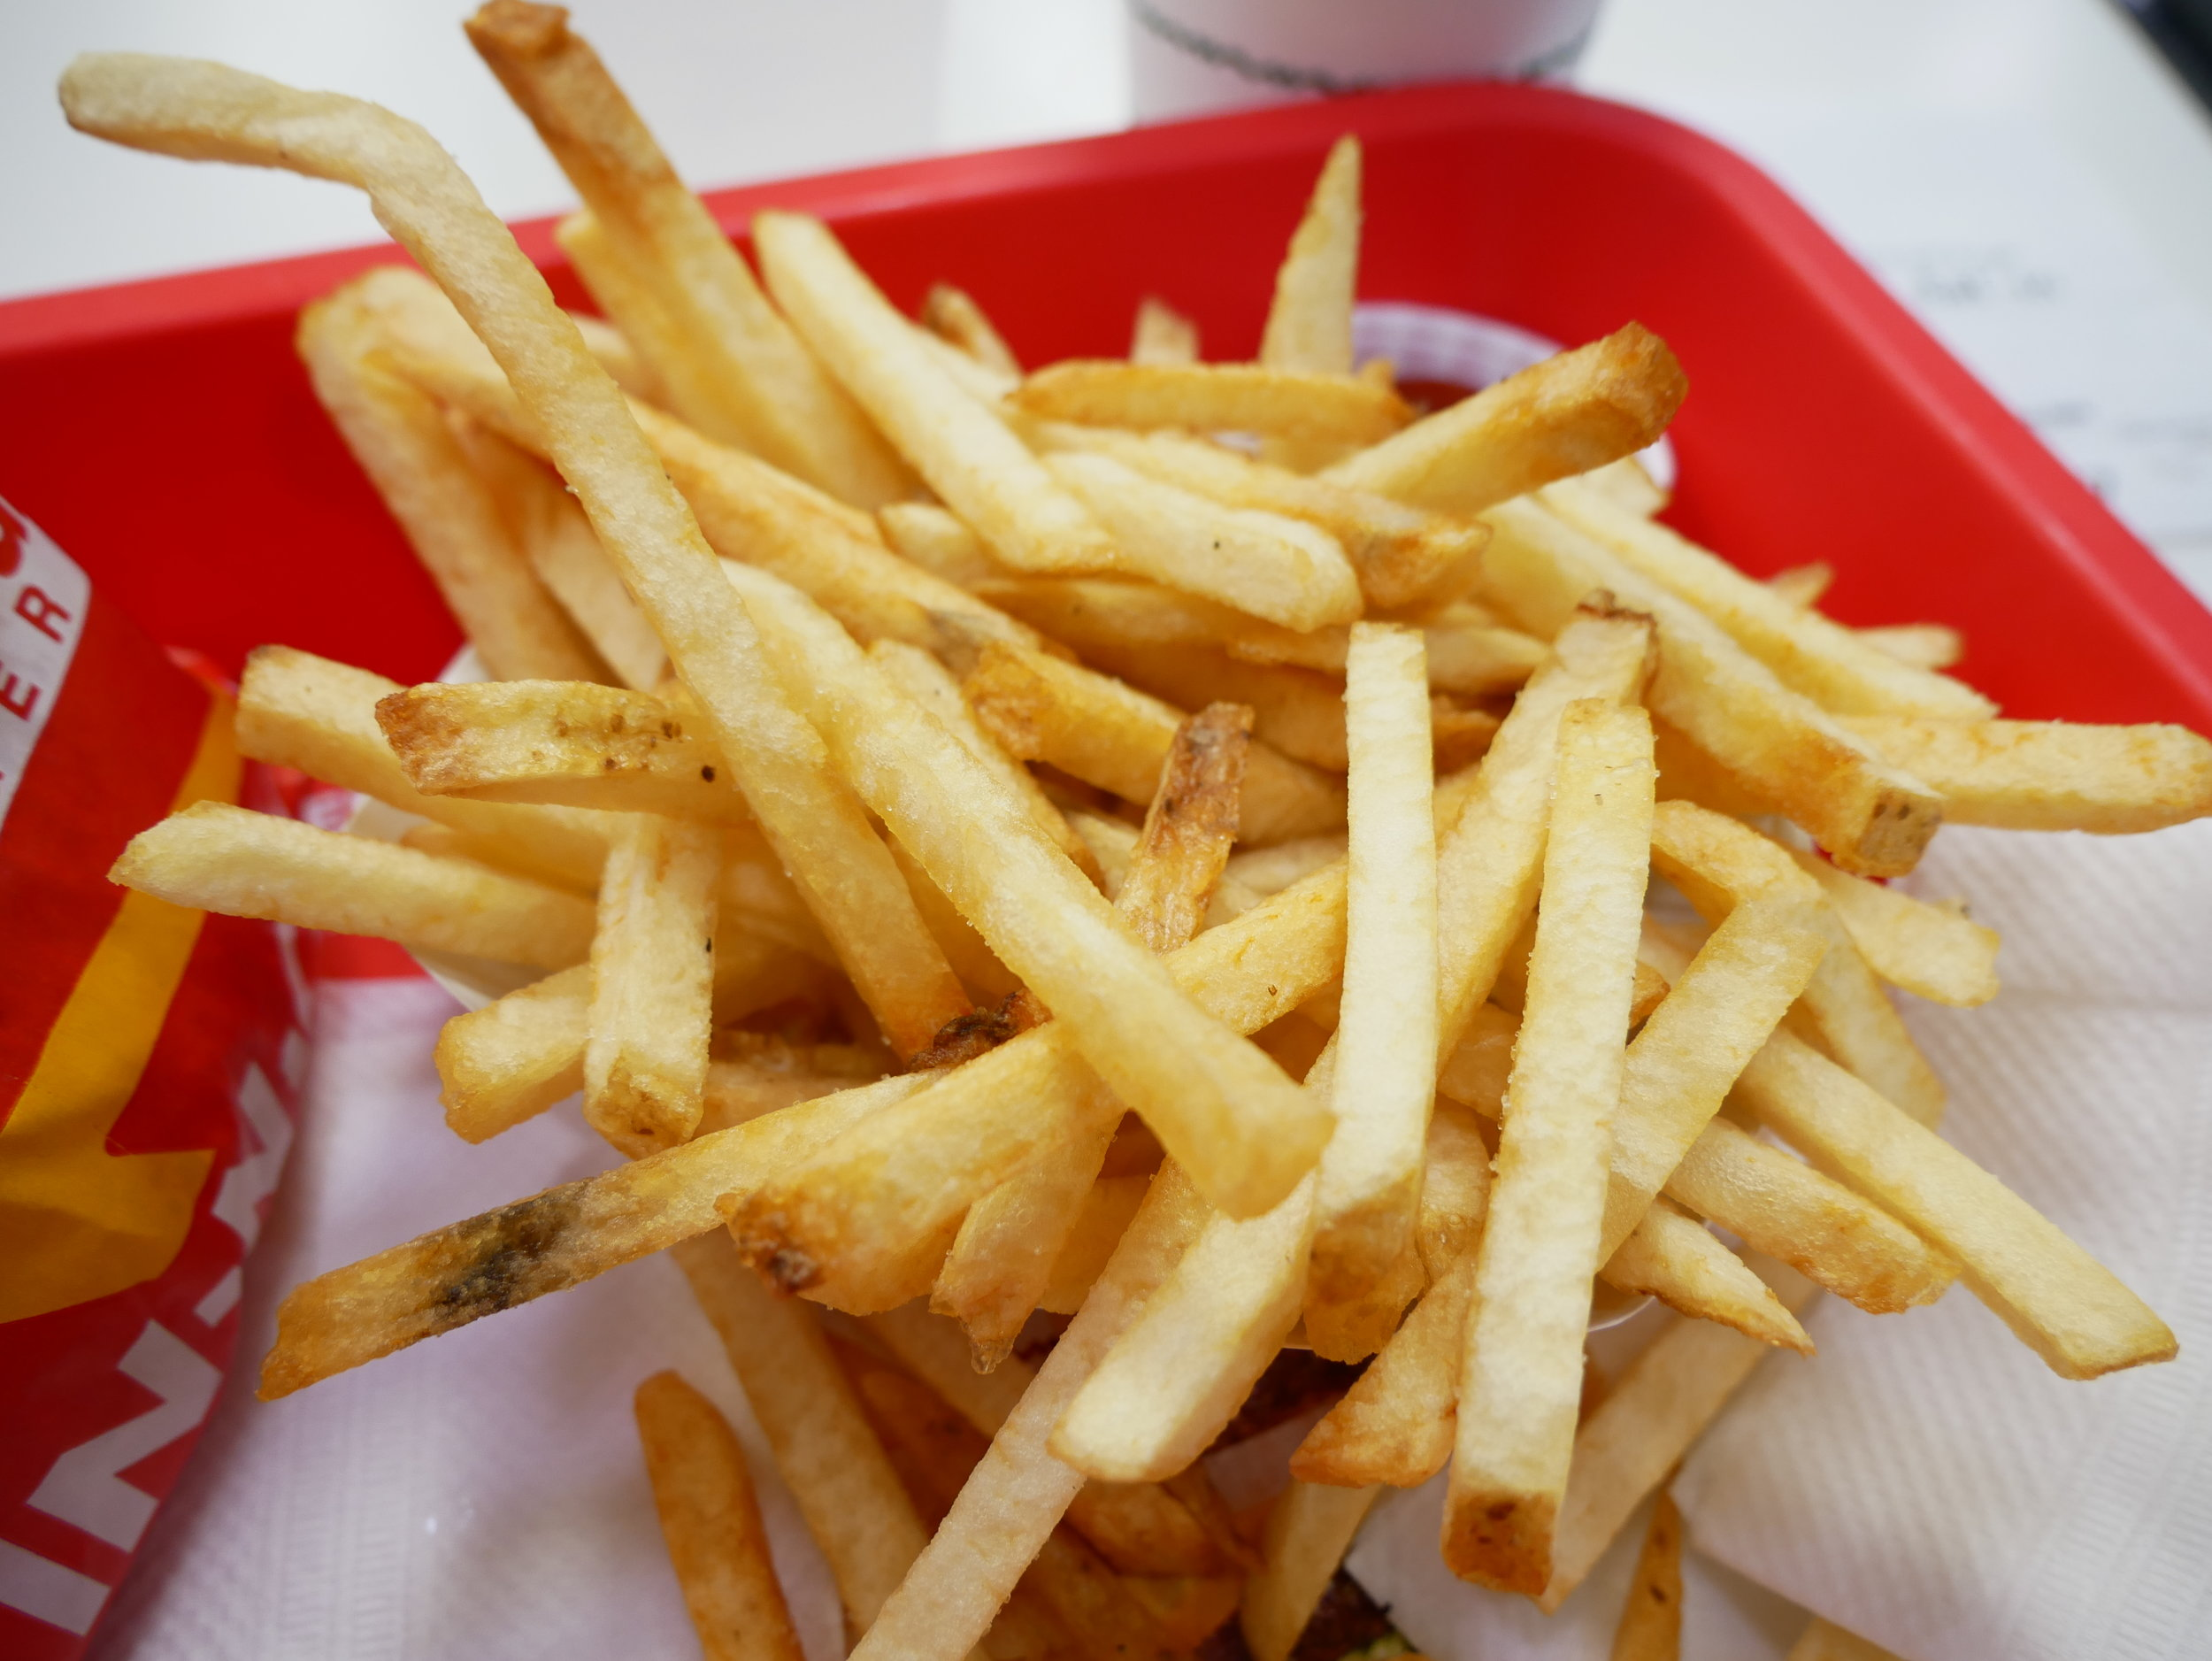 In-N-Out french fries well done